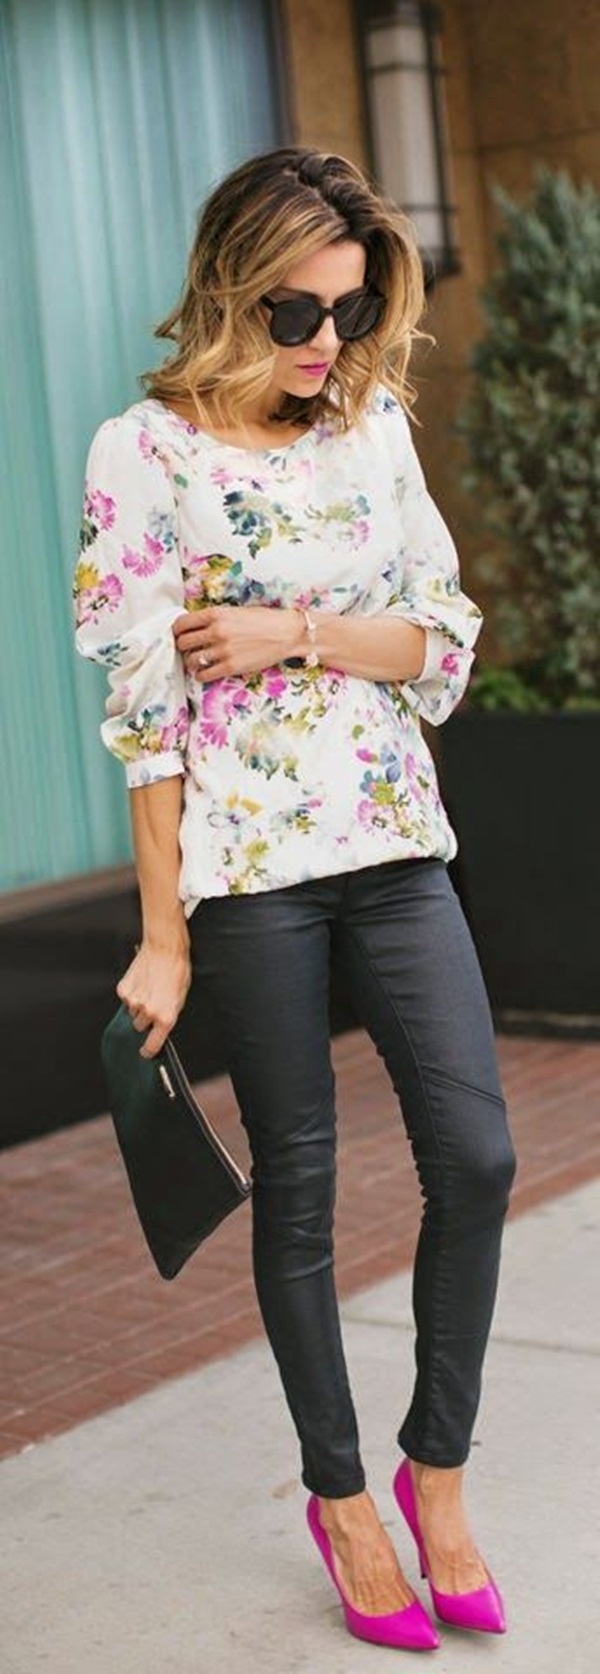 floral print outfit (27)